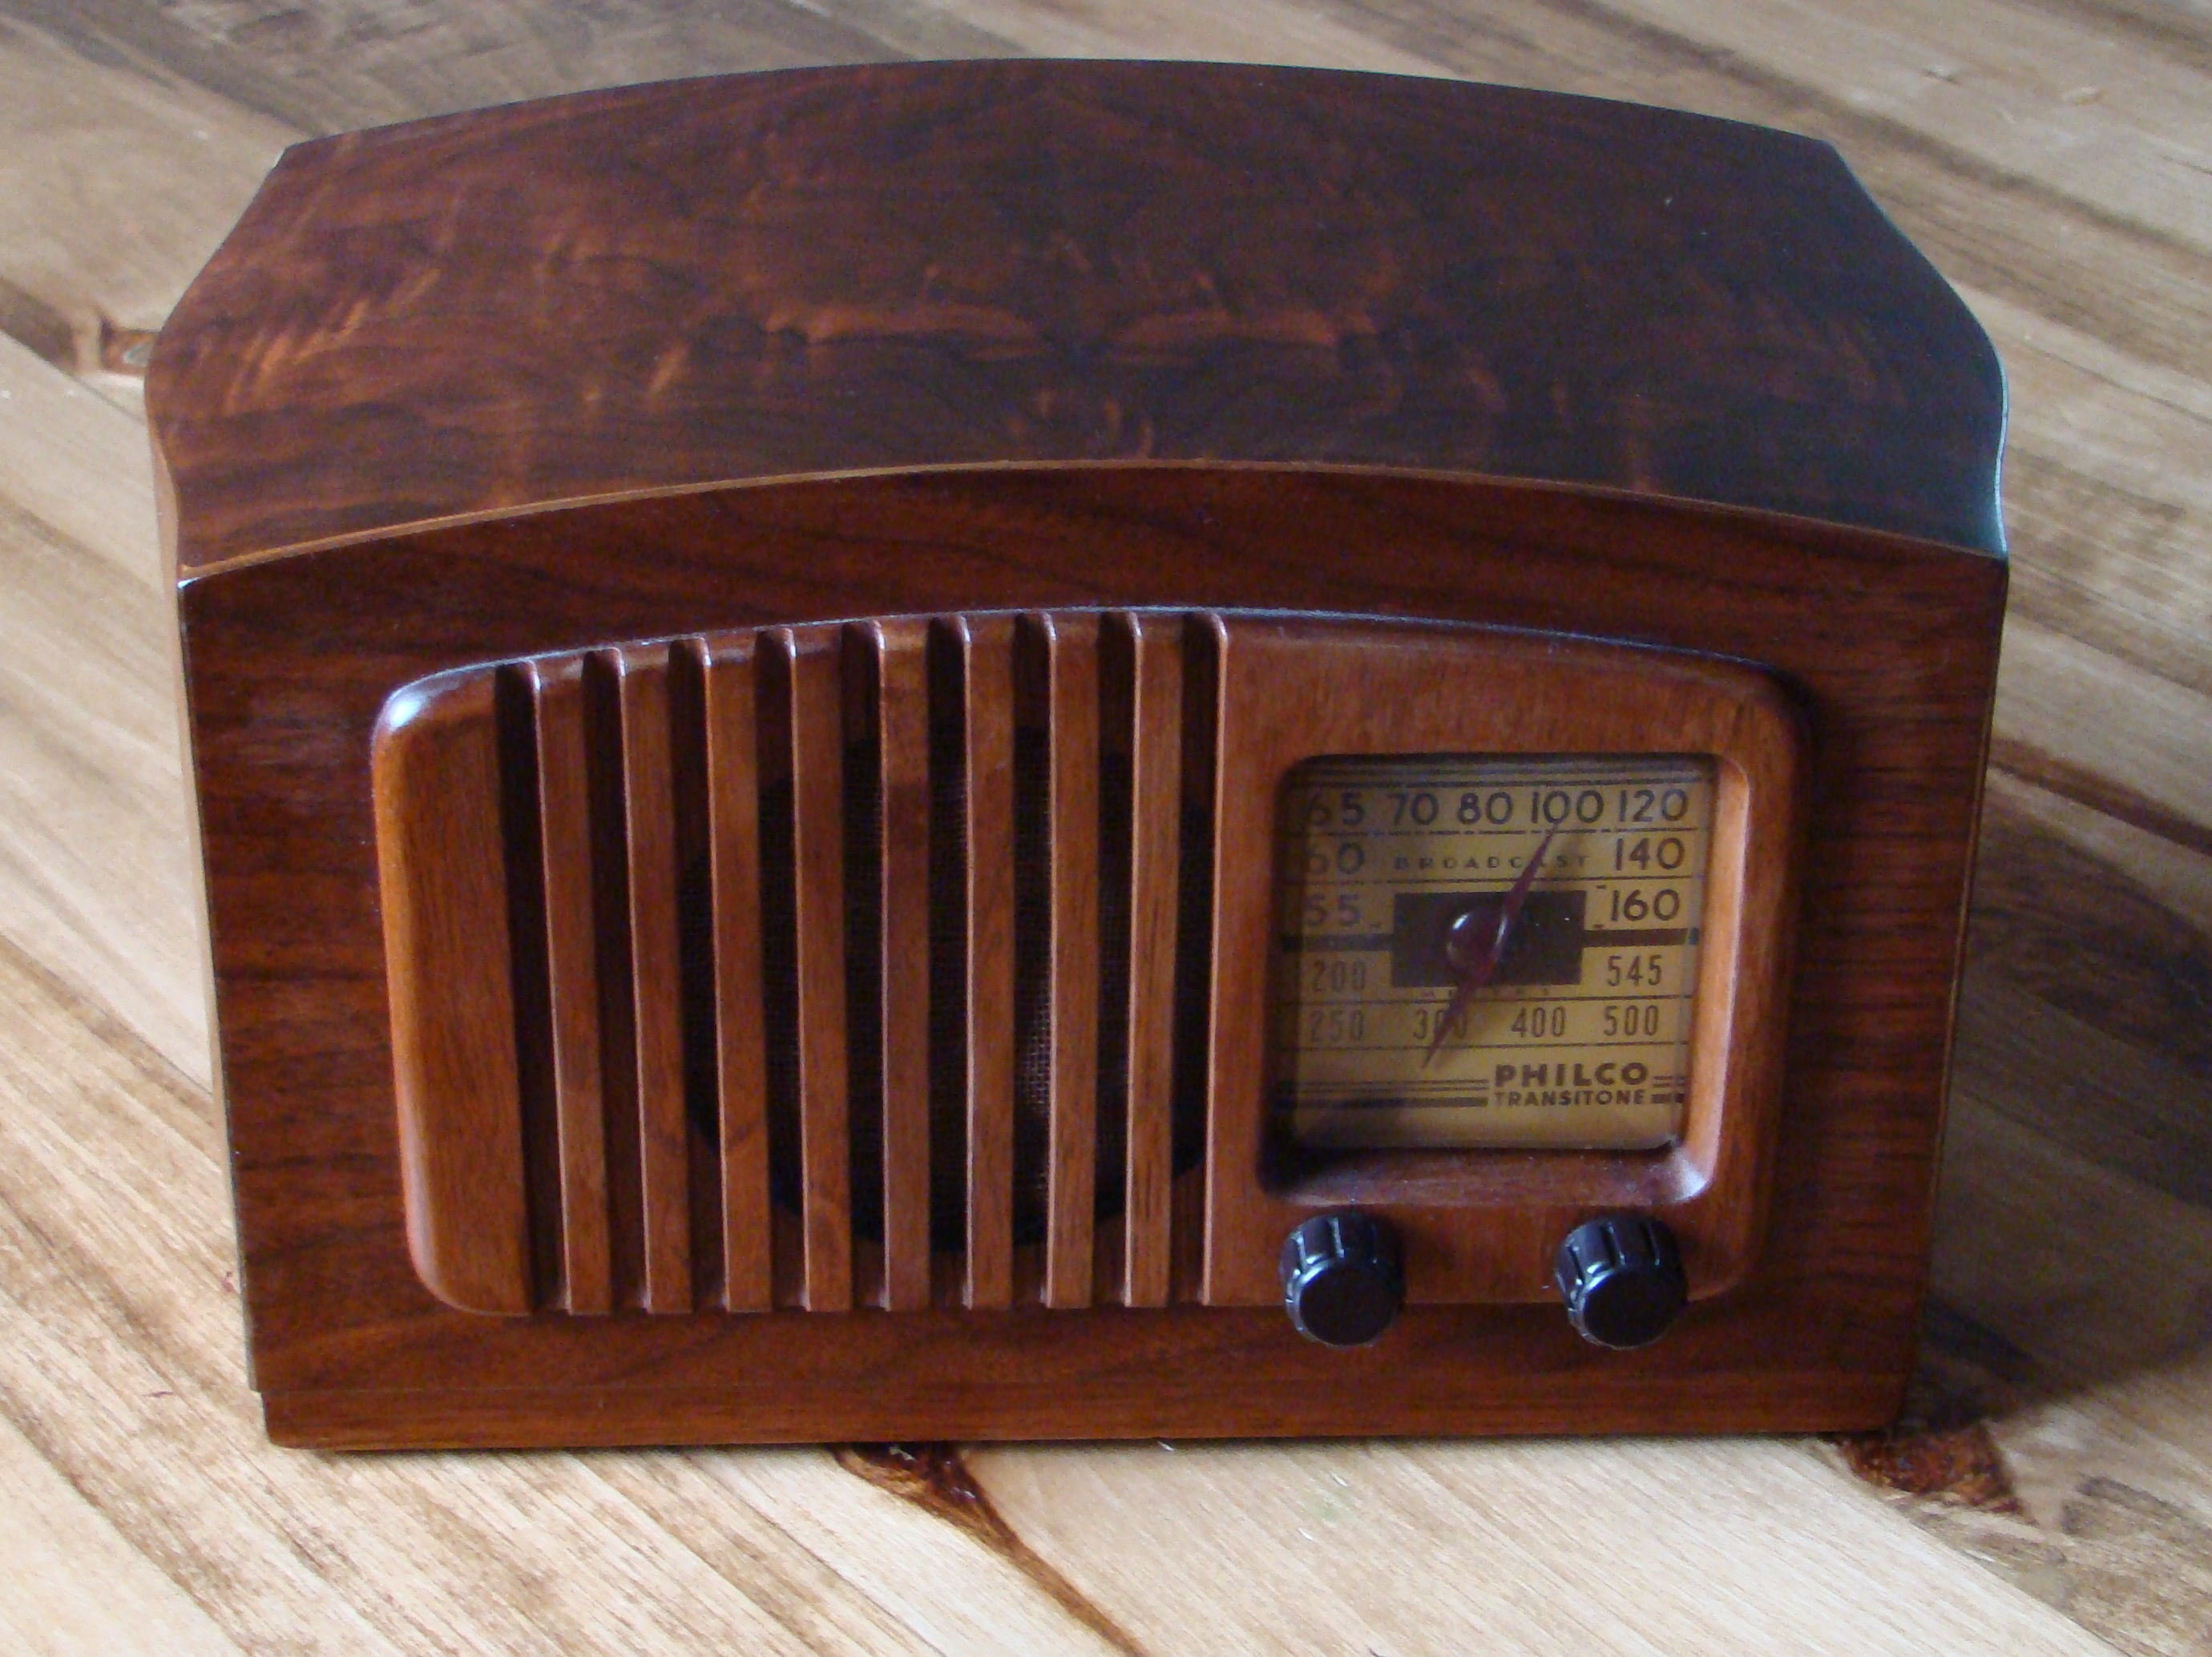 http://www.thecitizen.in/NewsImages/618639Philco_radio_model_PT44_front.jpg